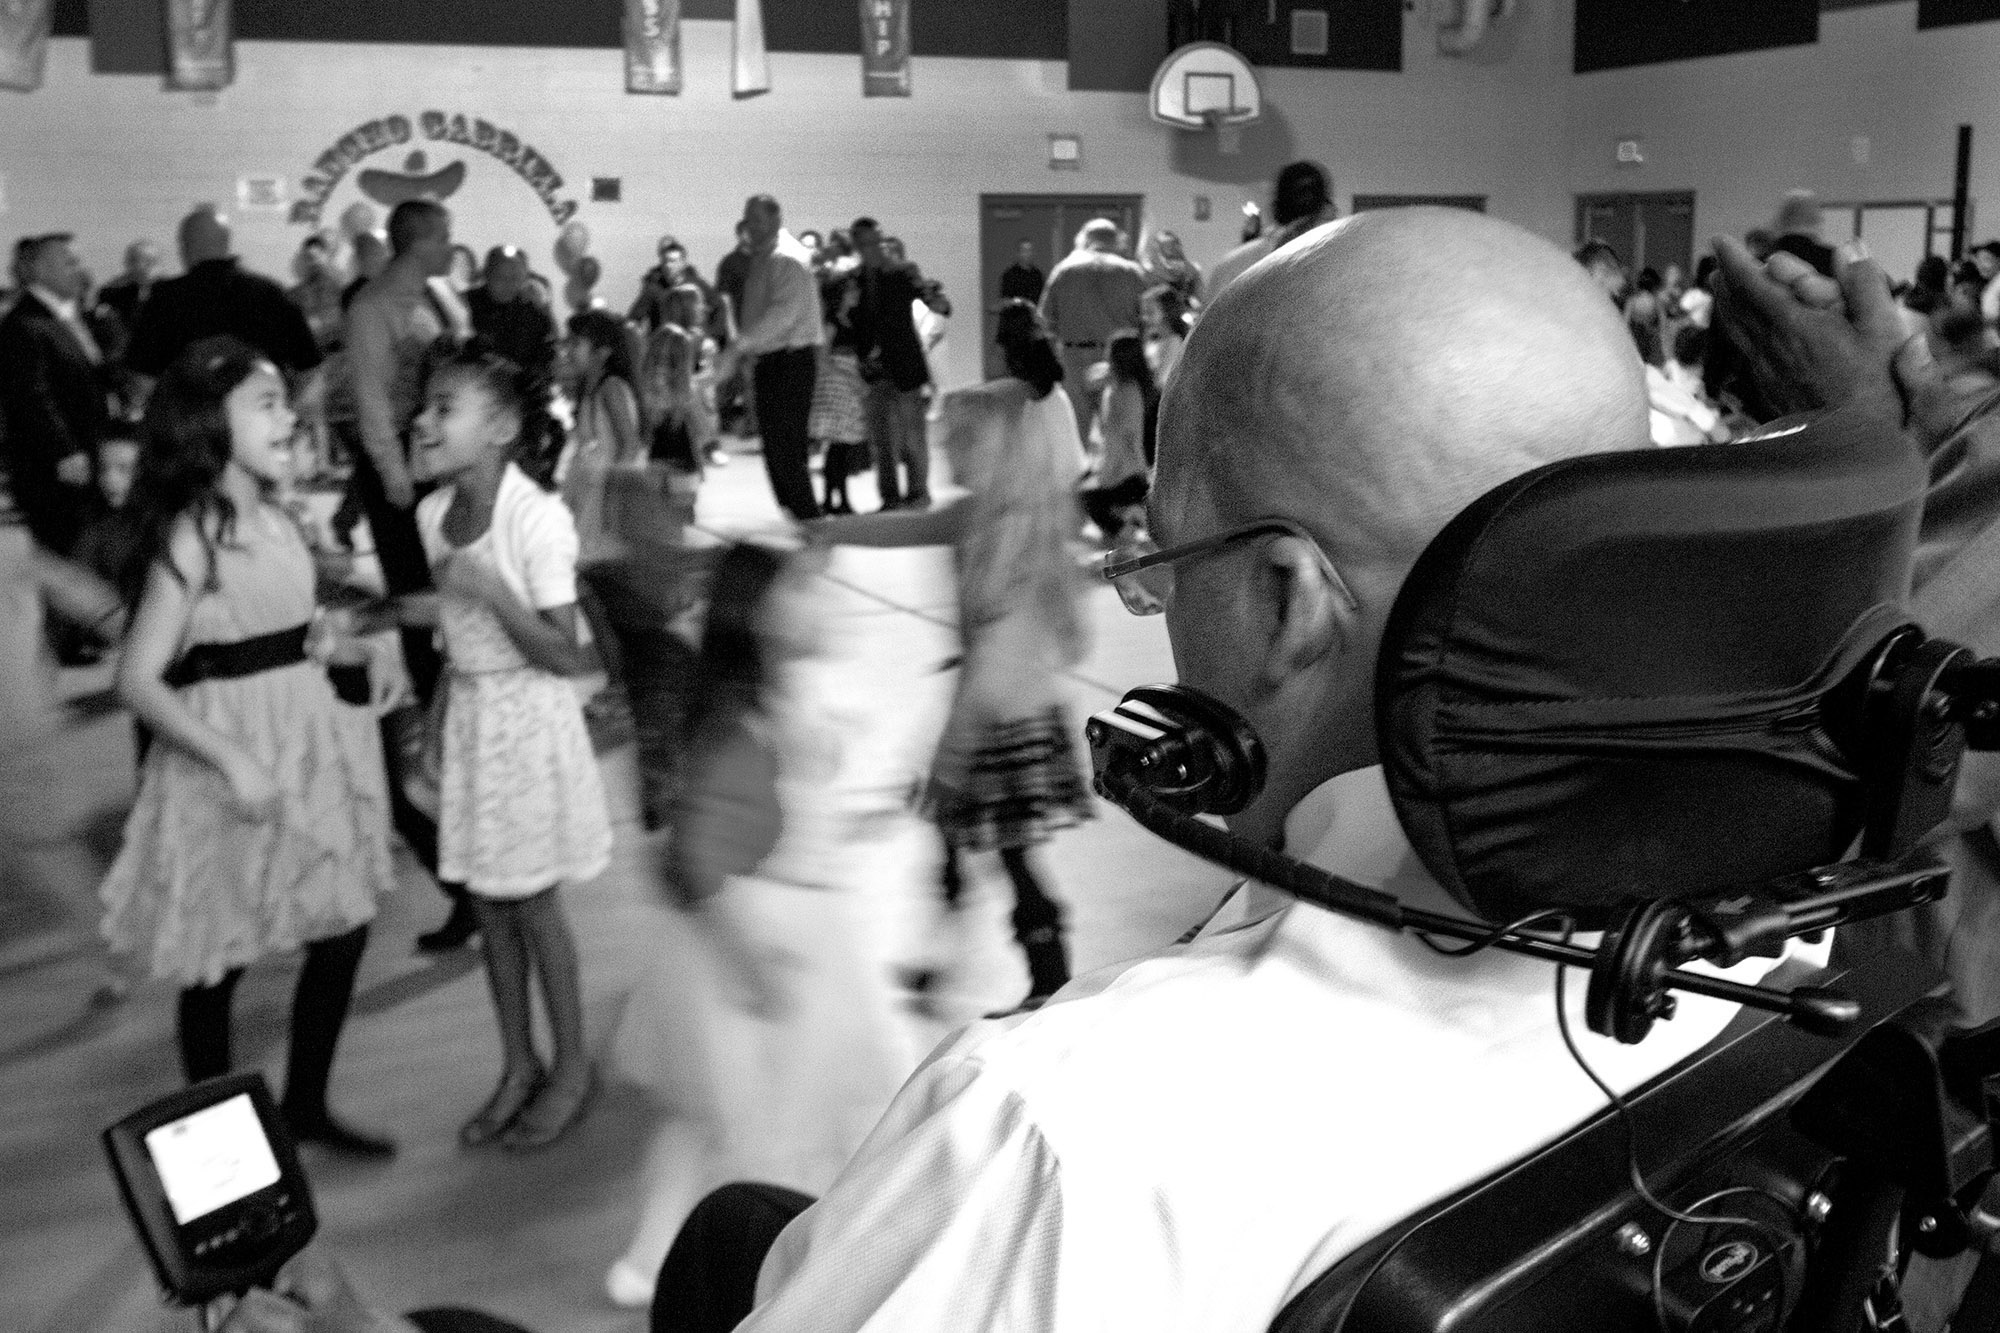 Mike watches his daughter Miah (left) laugh with her friend during a father-daughter dance in her school's gymnasium.